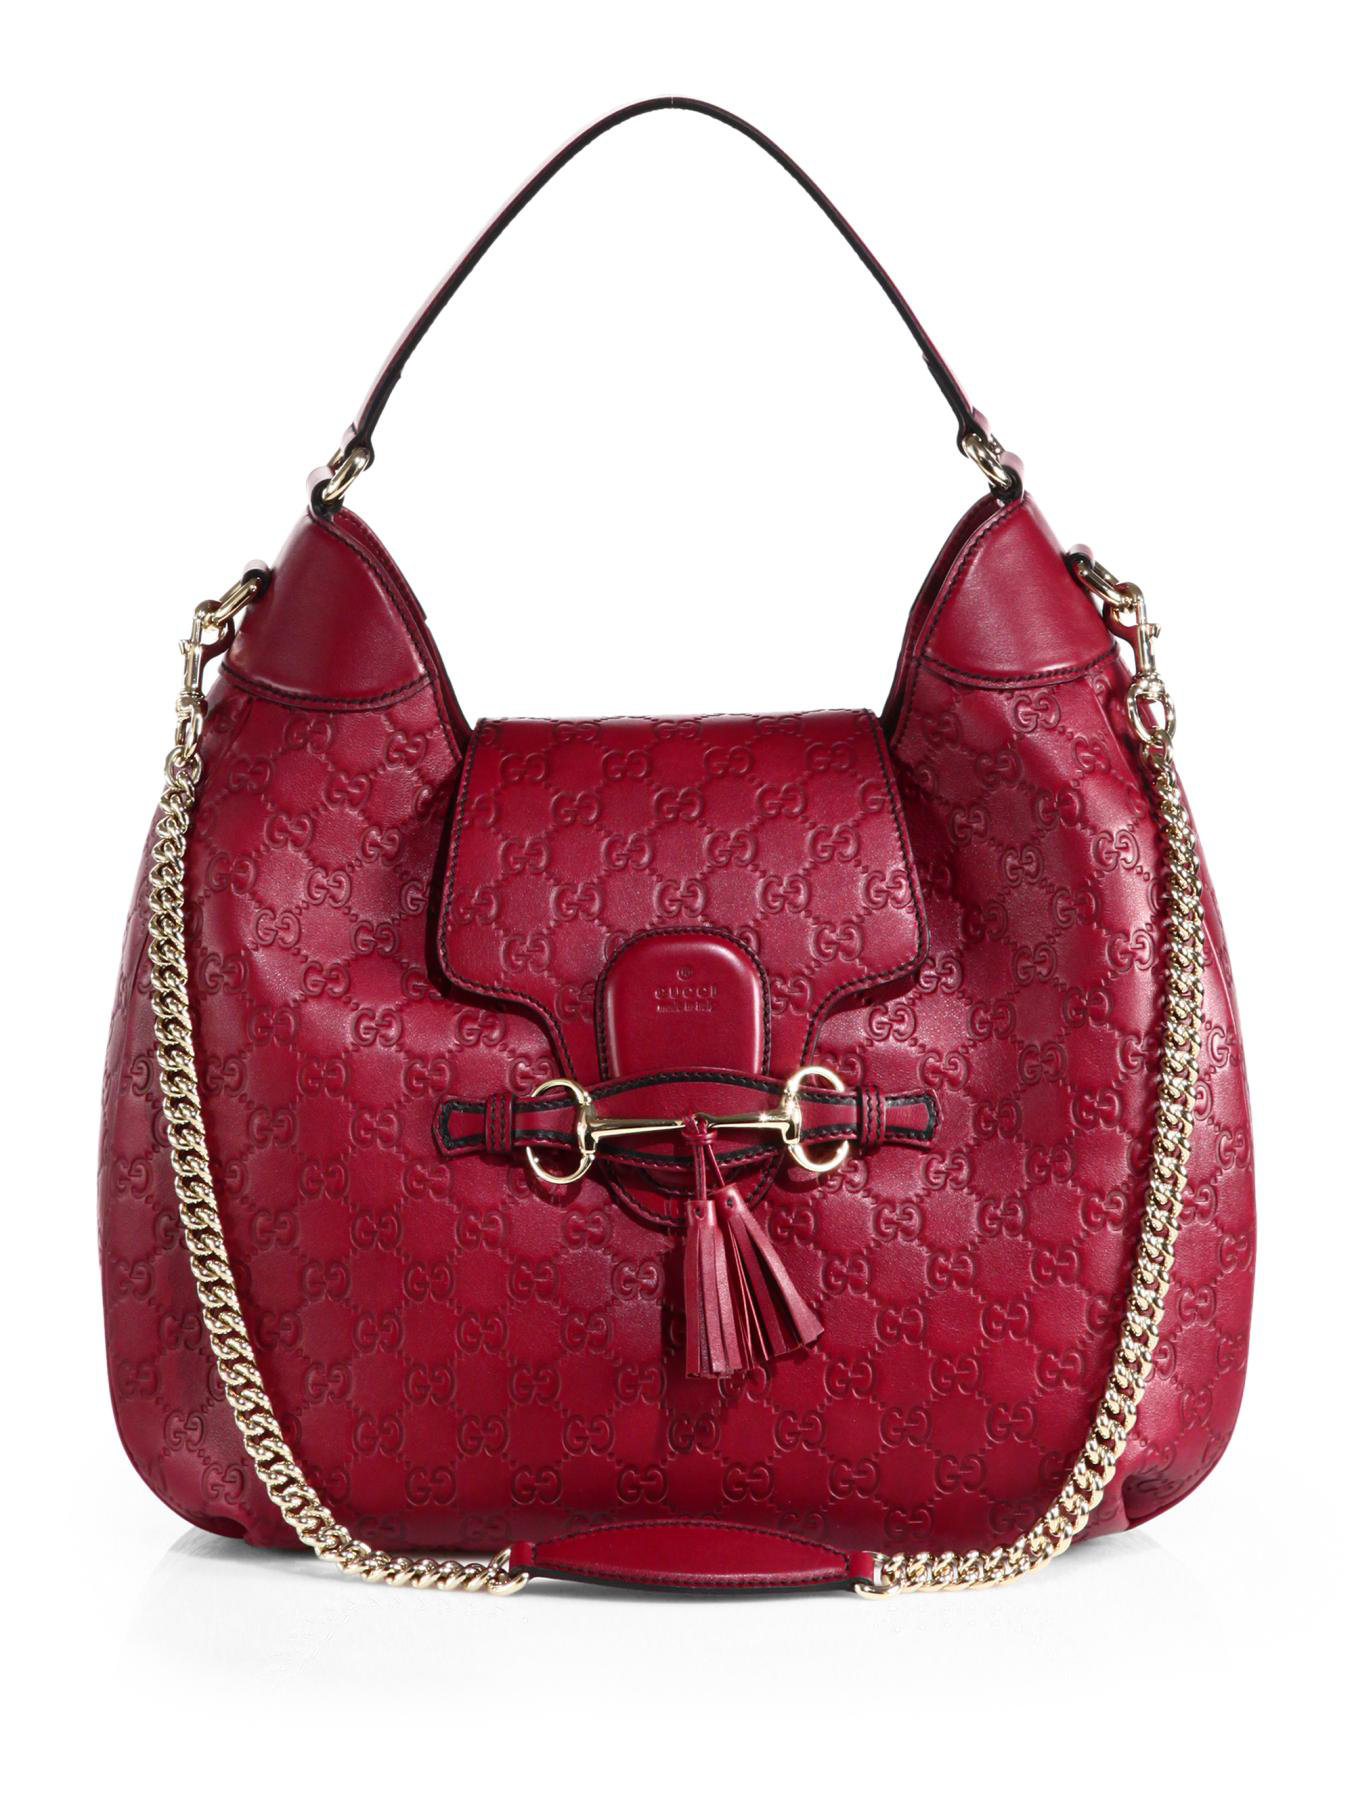 Gucci Emily Ssima Leather Hobo Bag in Red | Lyst